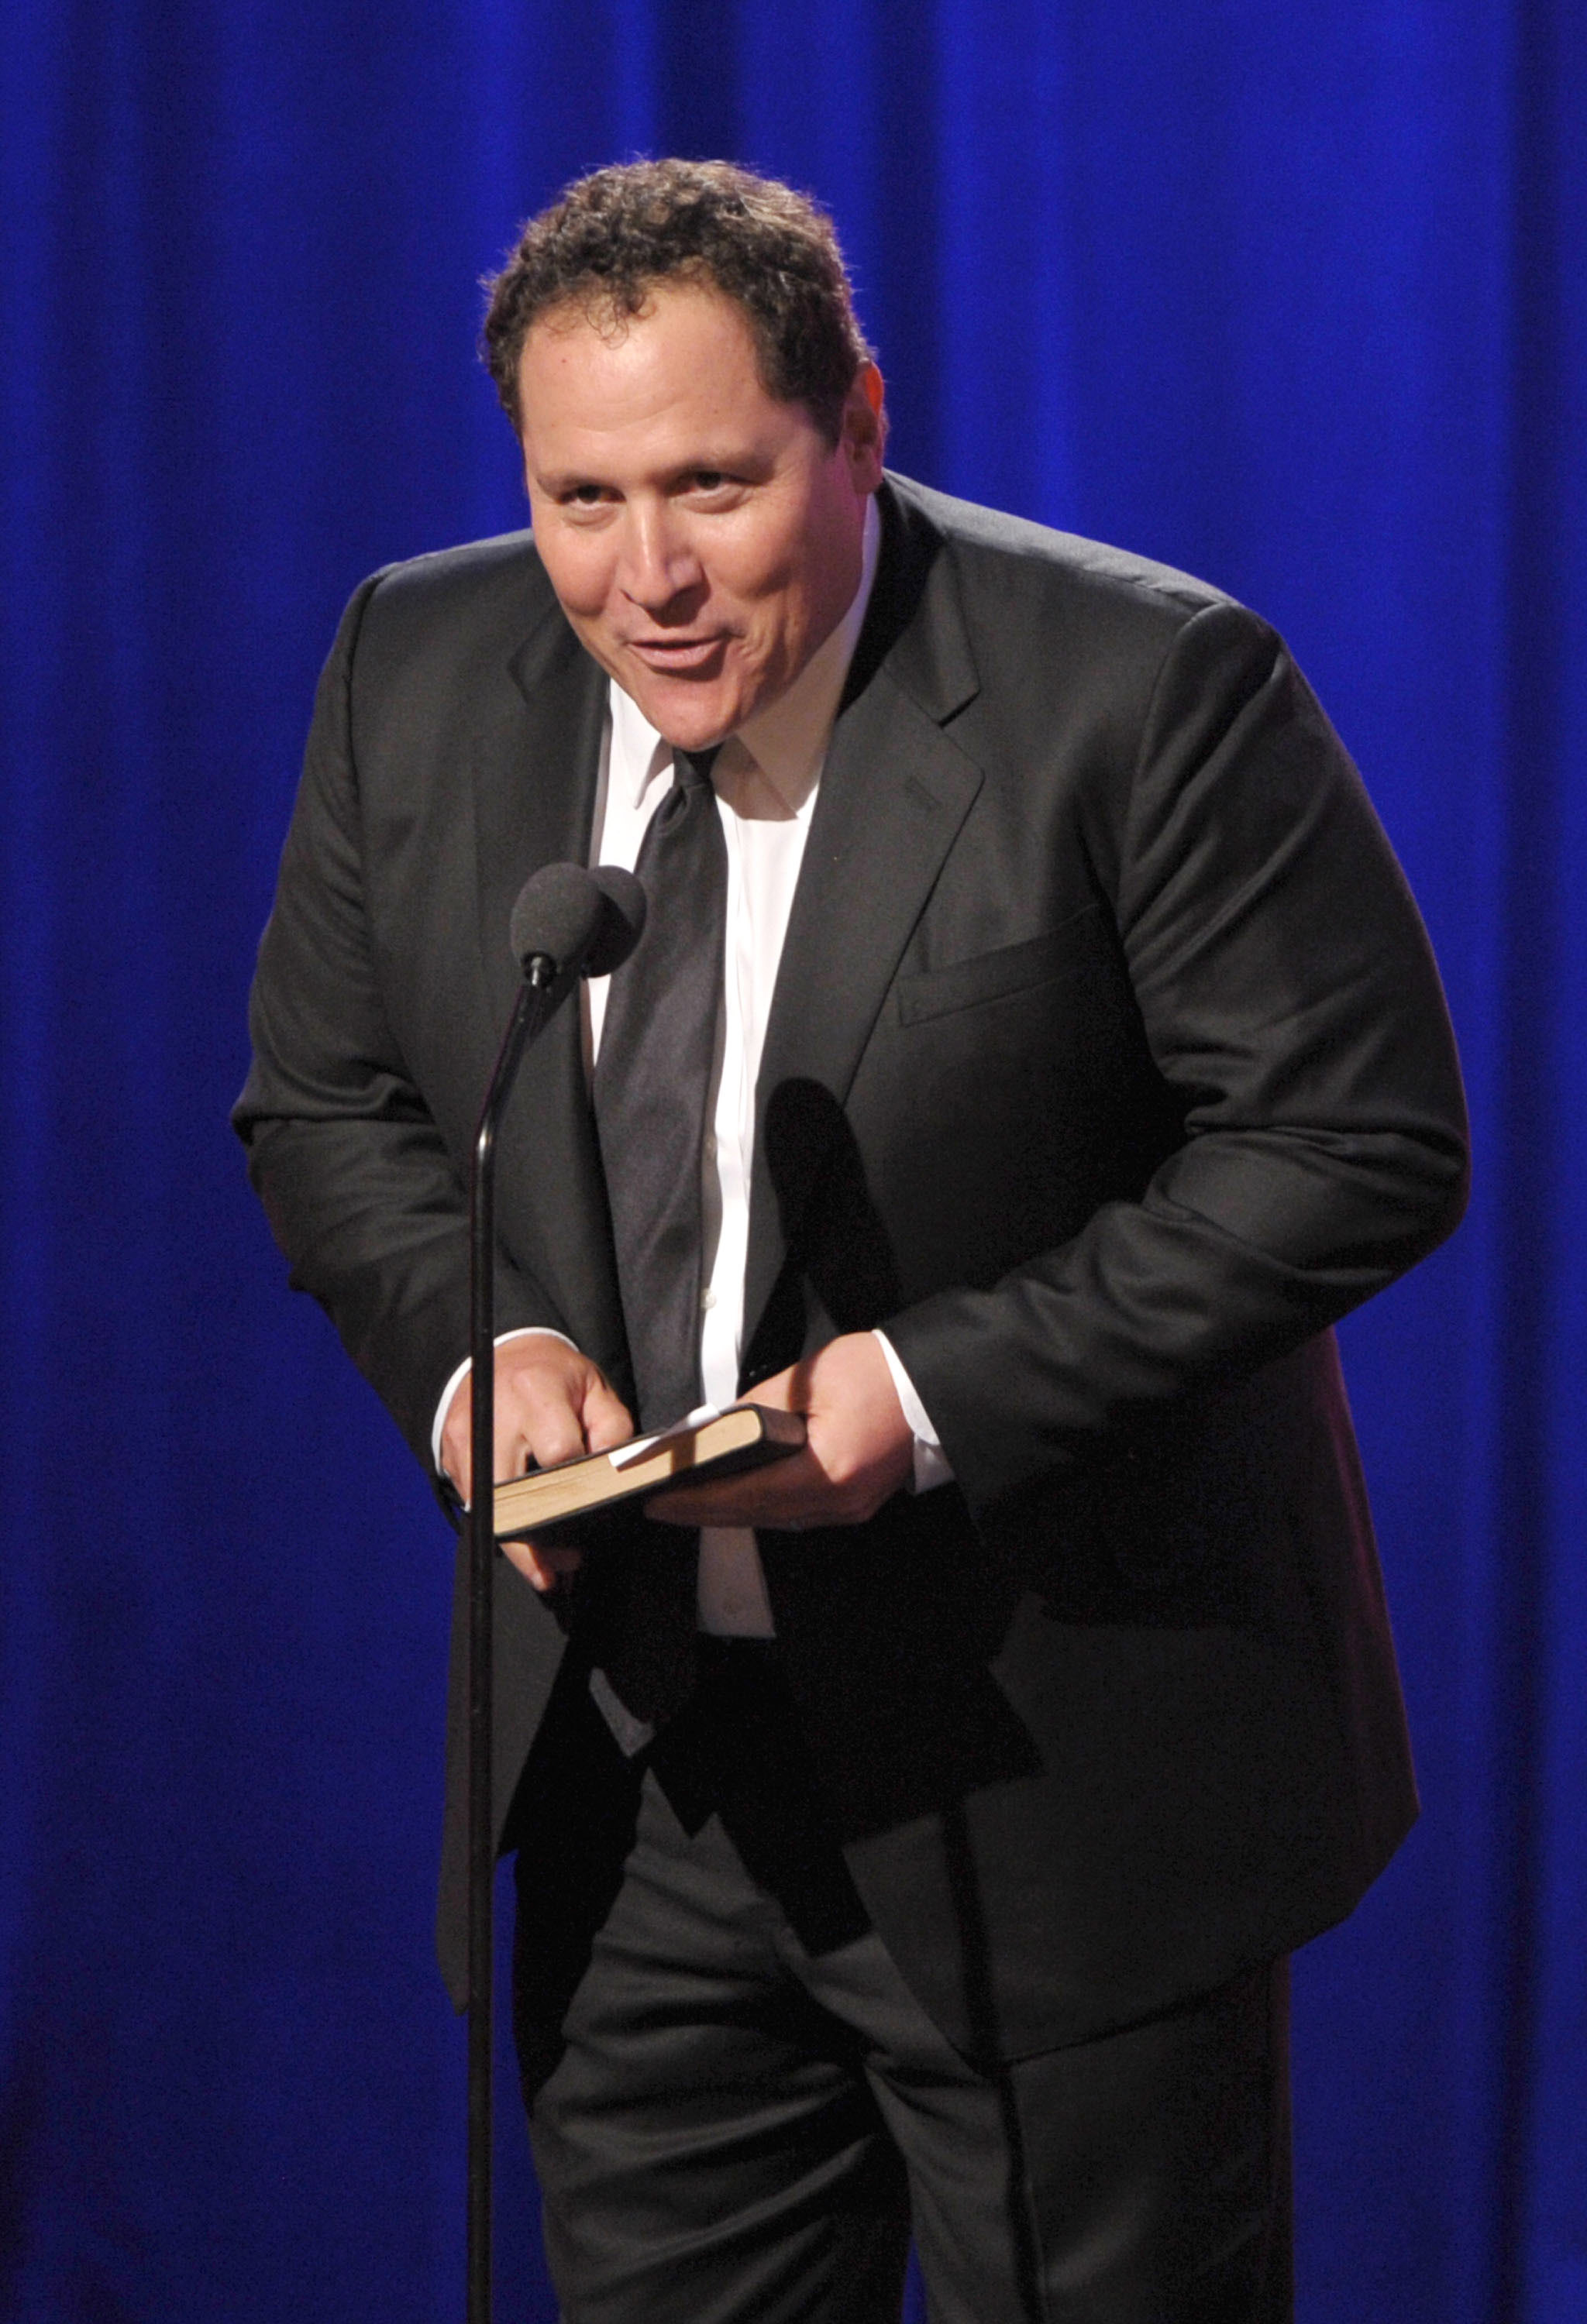 Jon Favreau was also on hand.